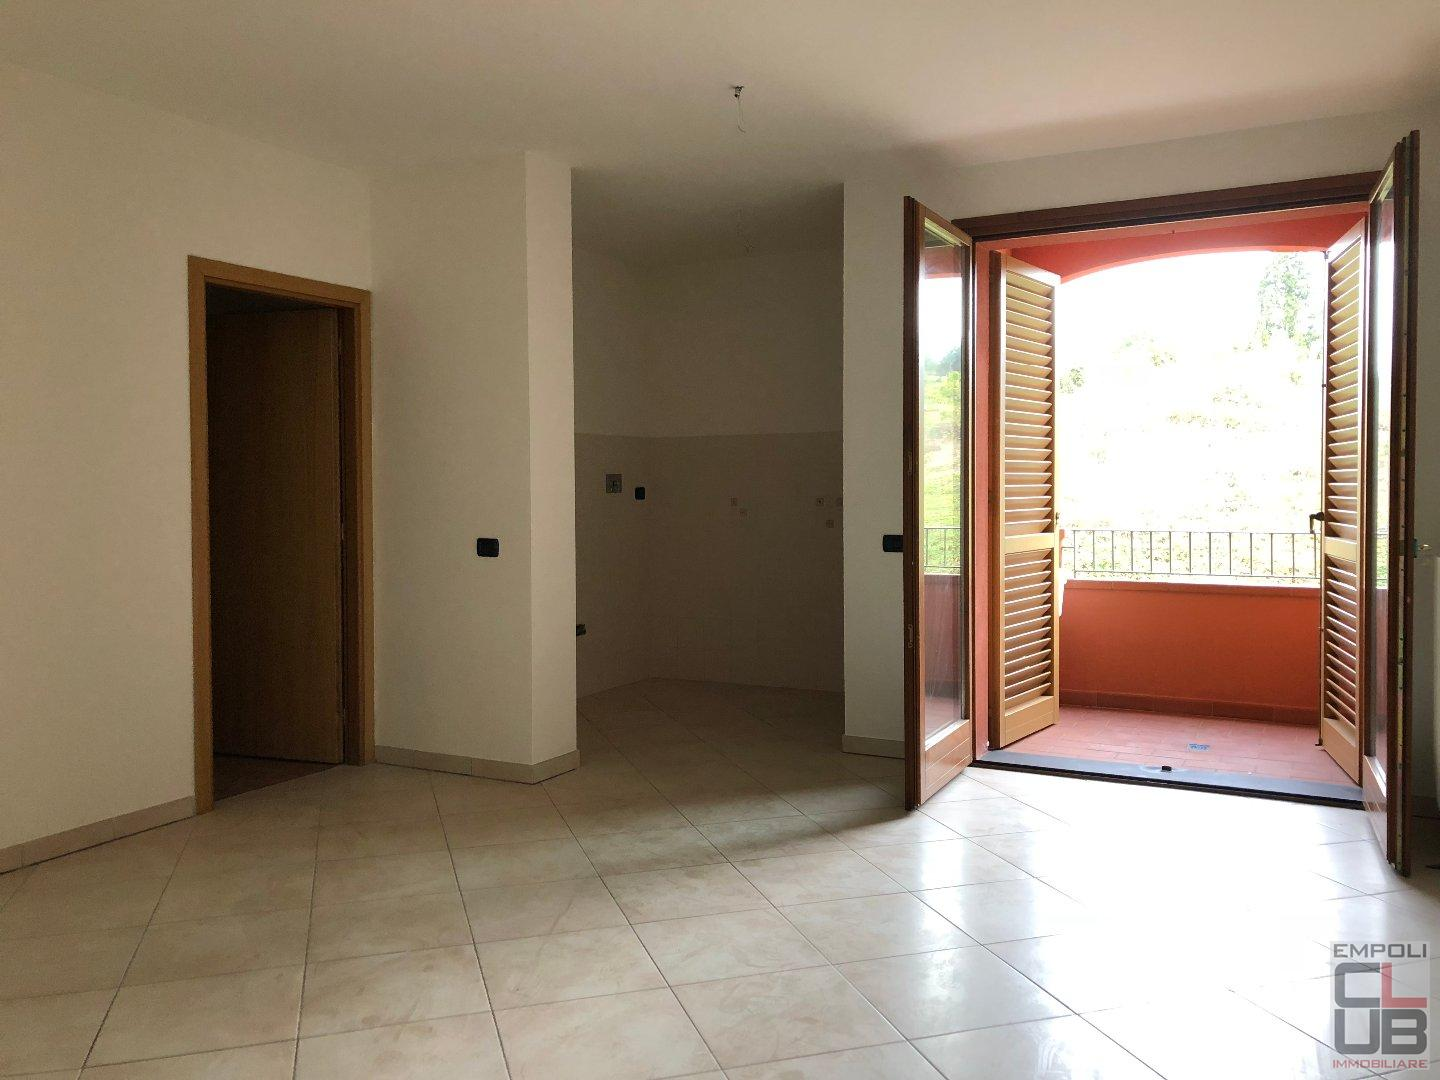 Apartment for rent in Vinci (FI)